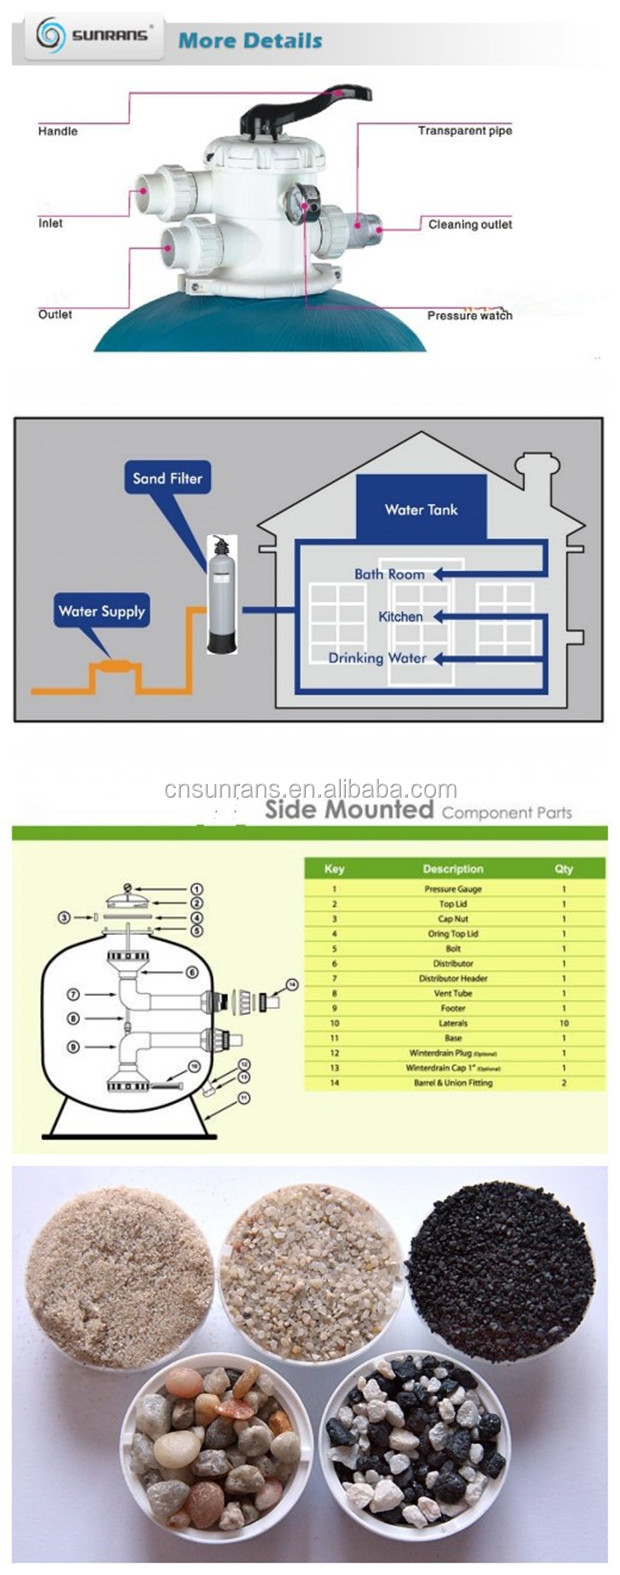 Domestic Pool Filtration Combo Multiport Valve Water Well Sand Filter Diagram Swimming